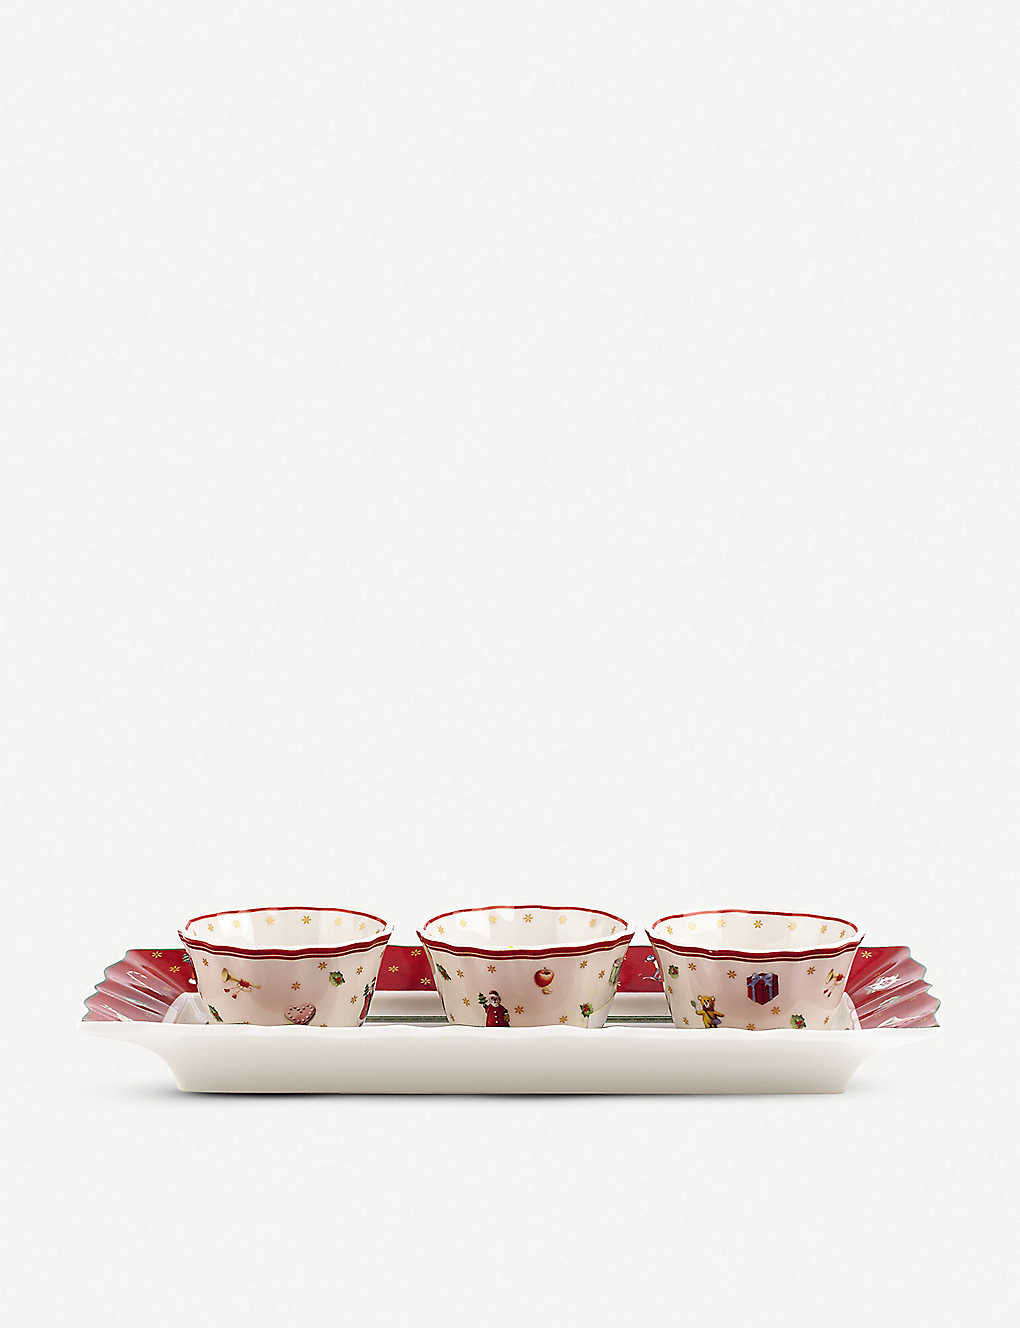 VILLEROY & BOCH: Toy's Delight dip set of four